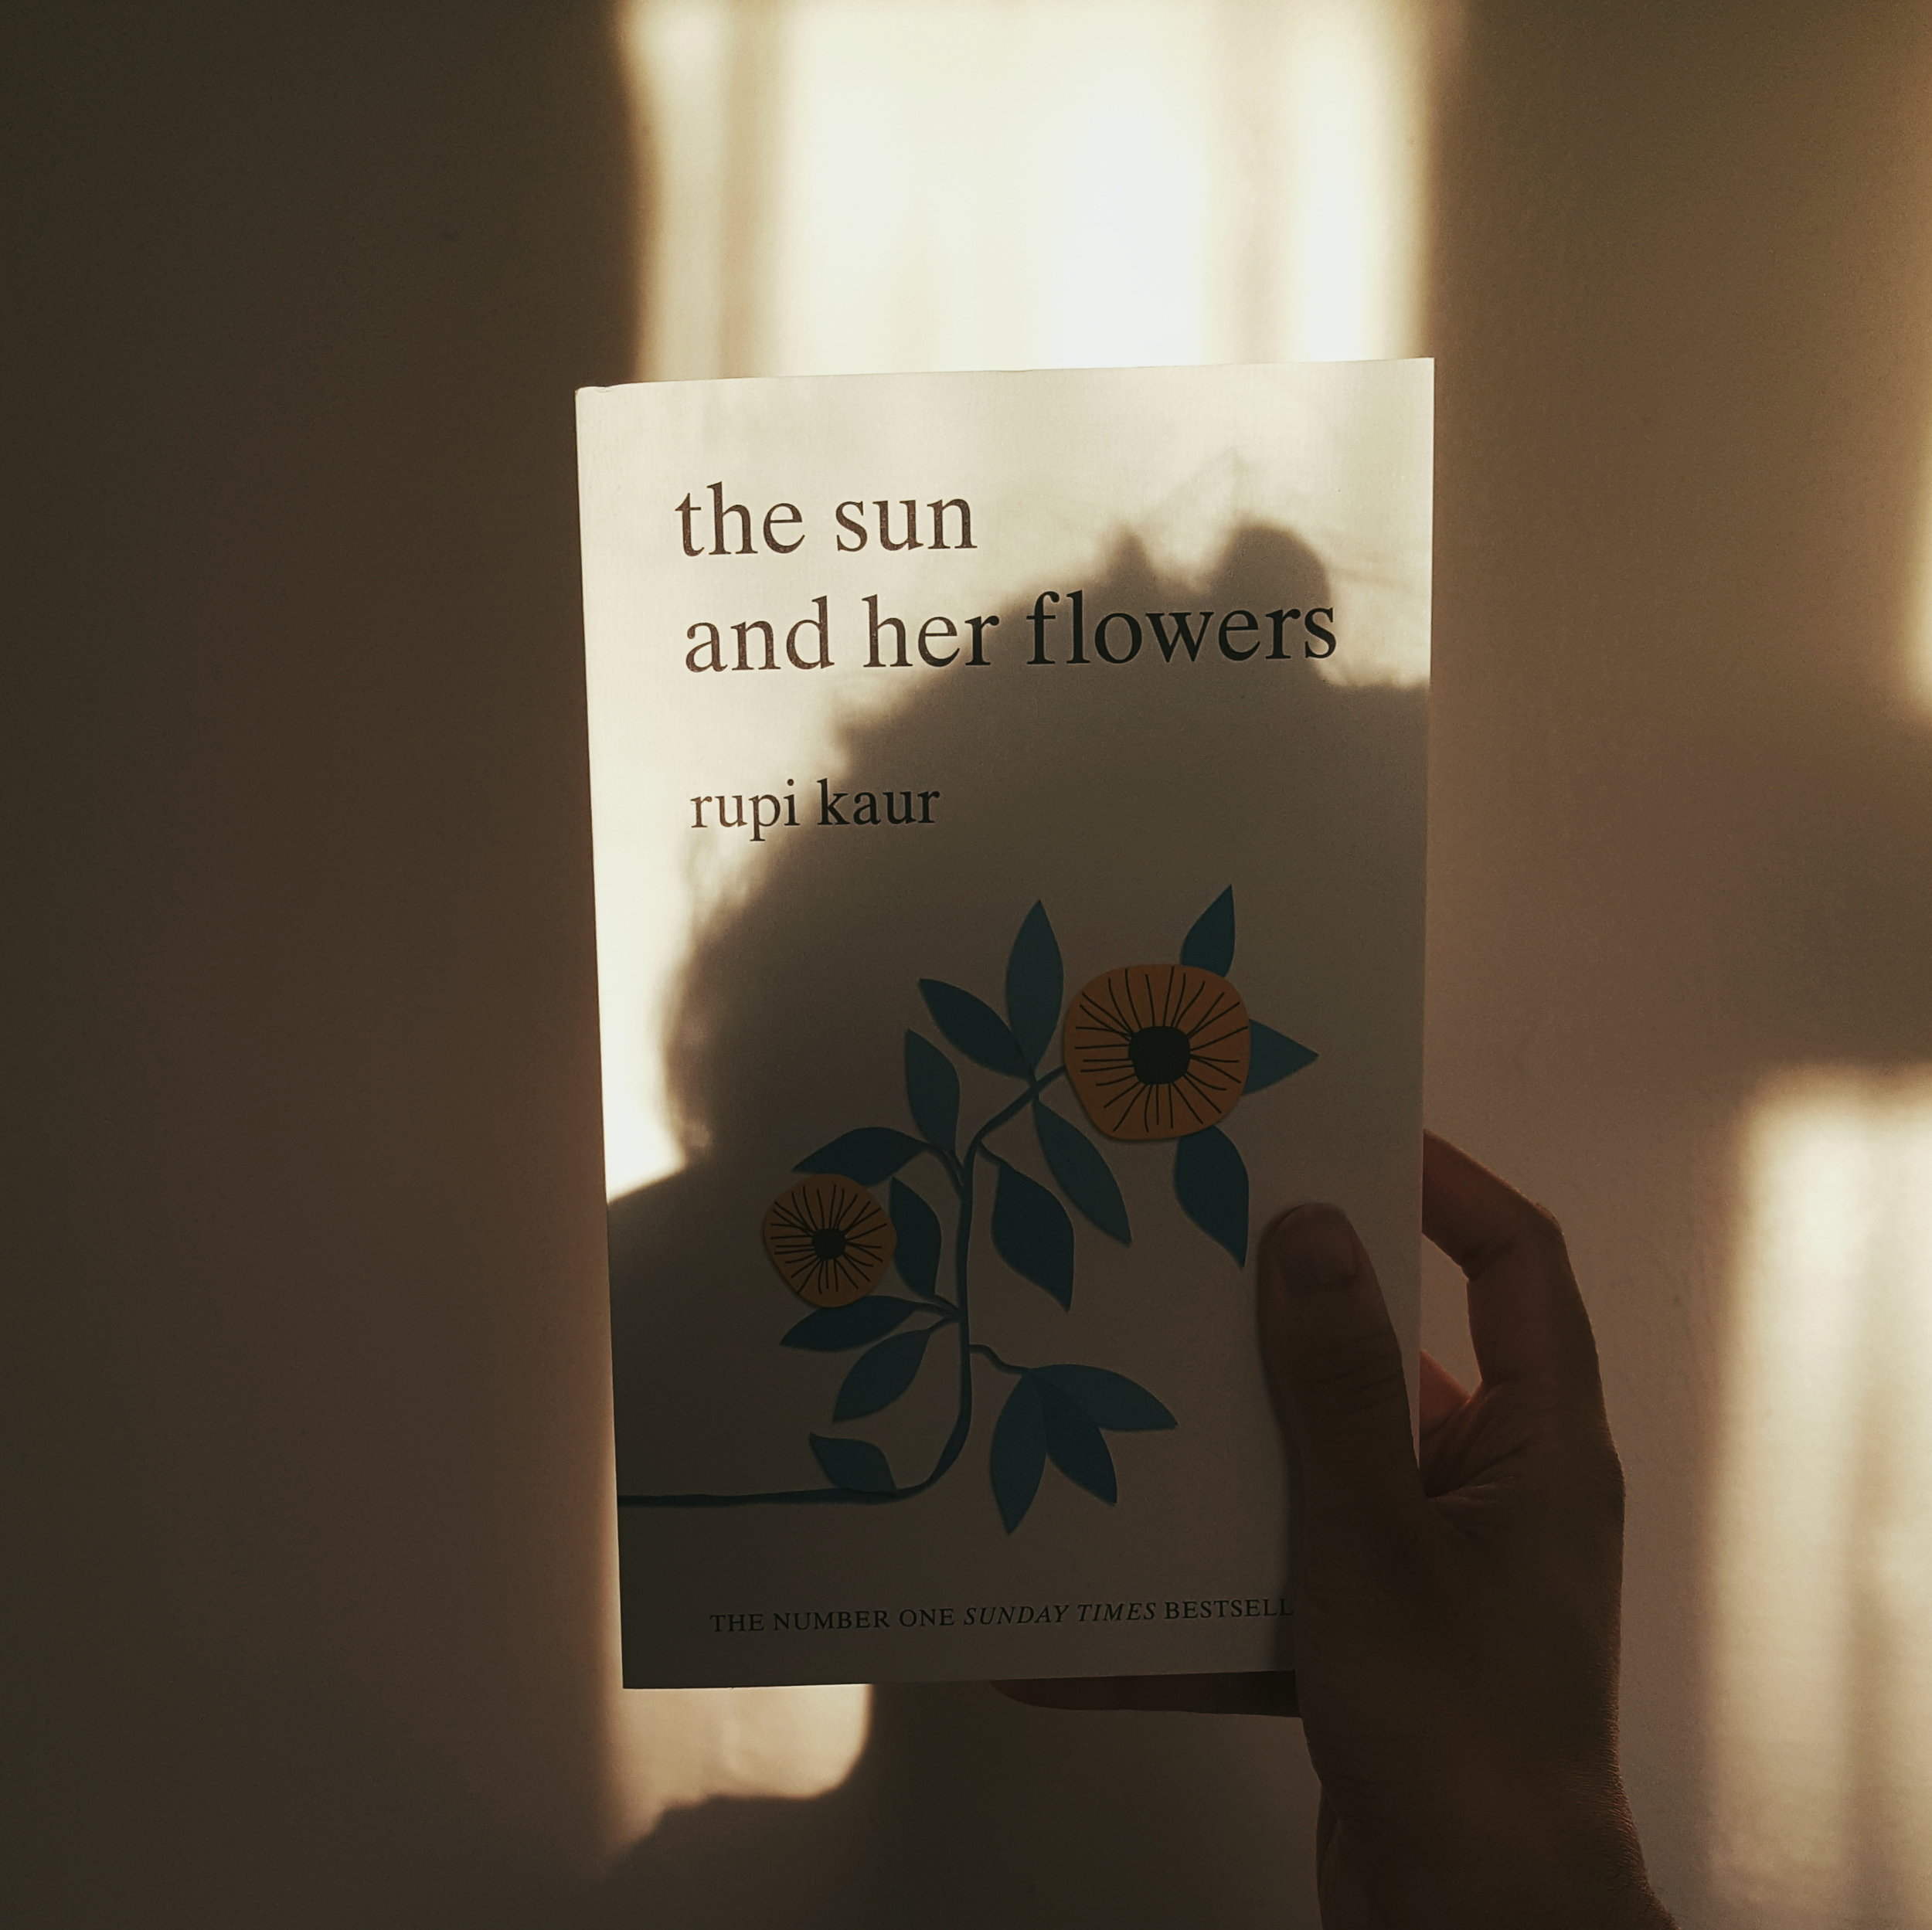 The sun and her flowers by Rupi Kaur - Something poetic to indulge in over a cup of tea.